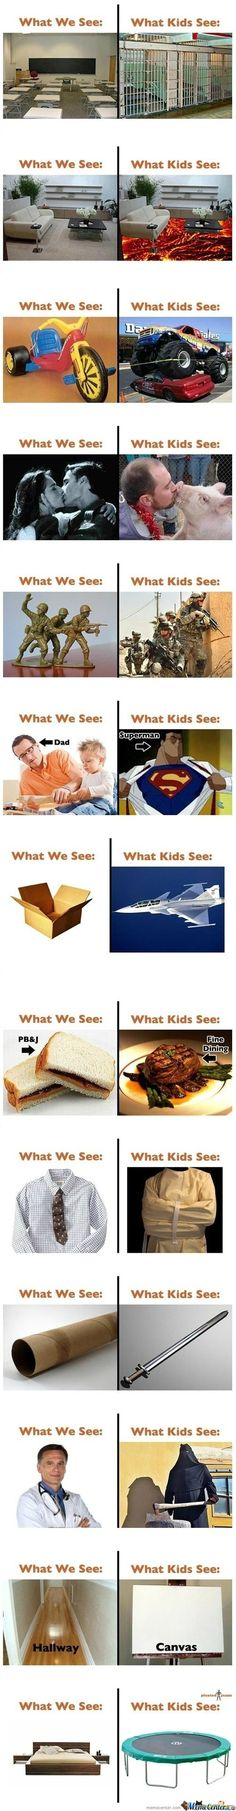 What adults see vs what kids see